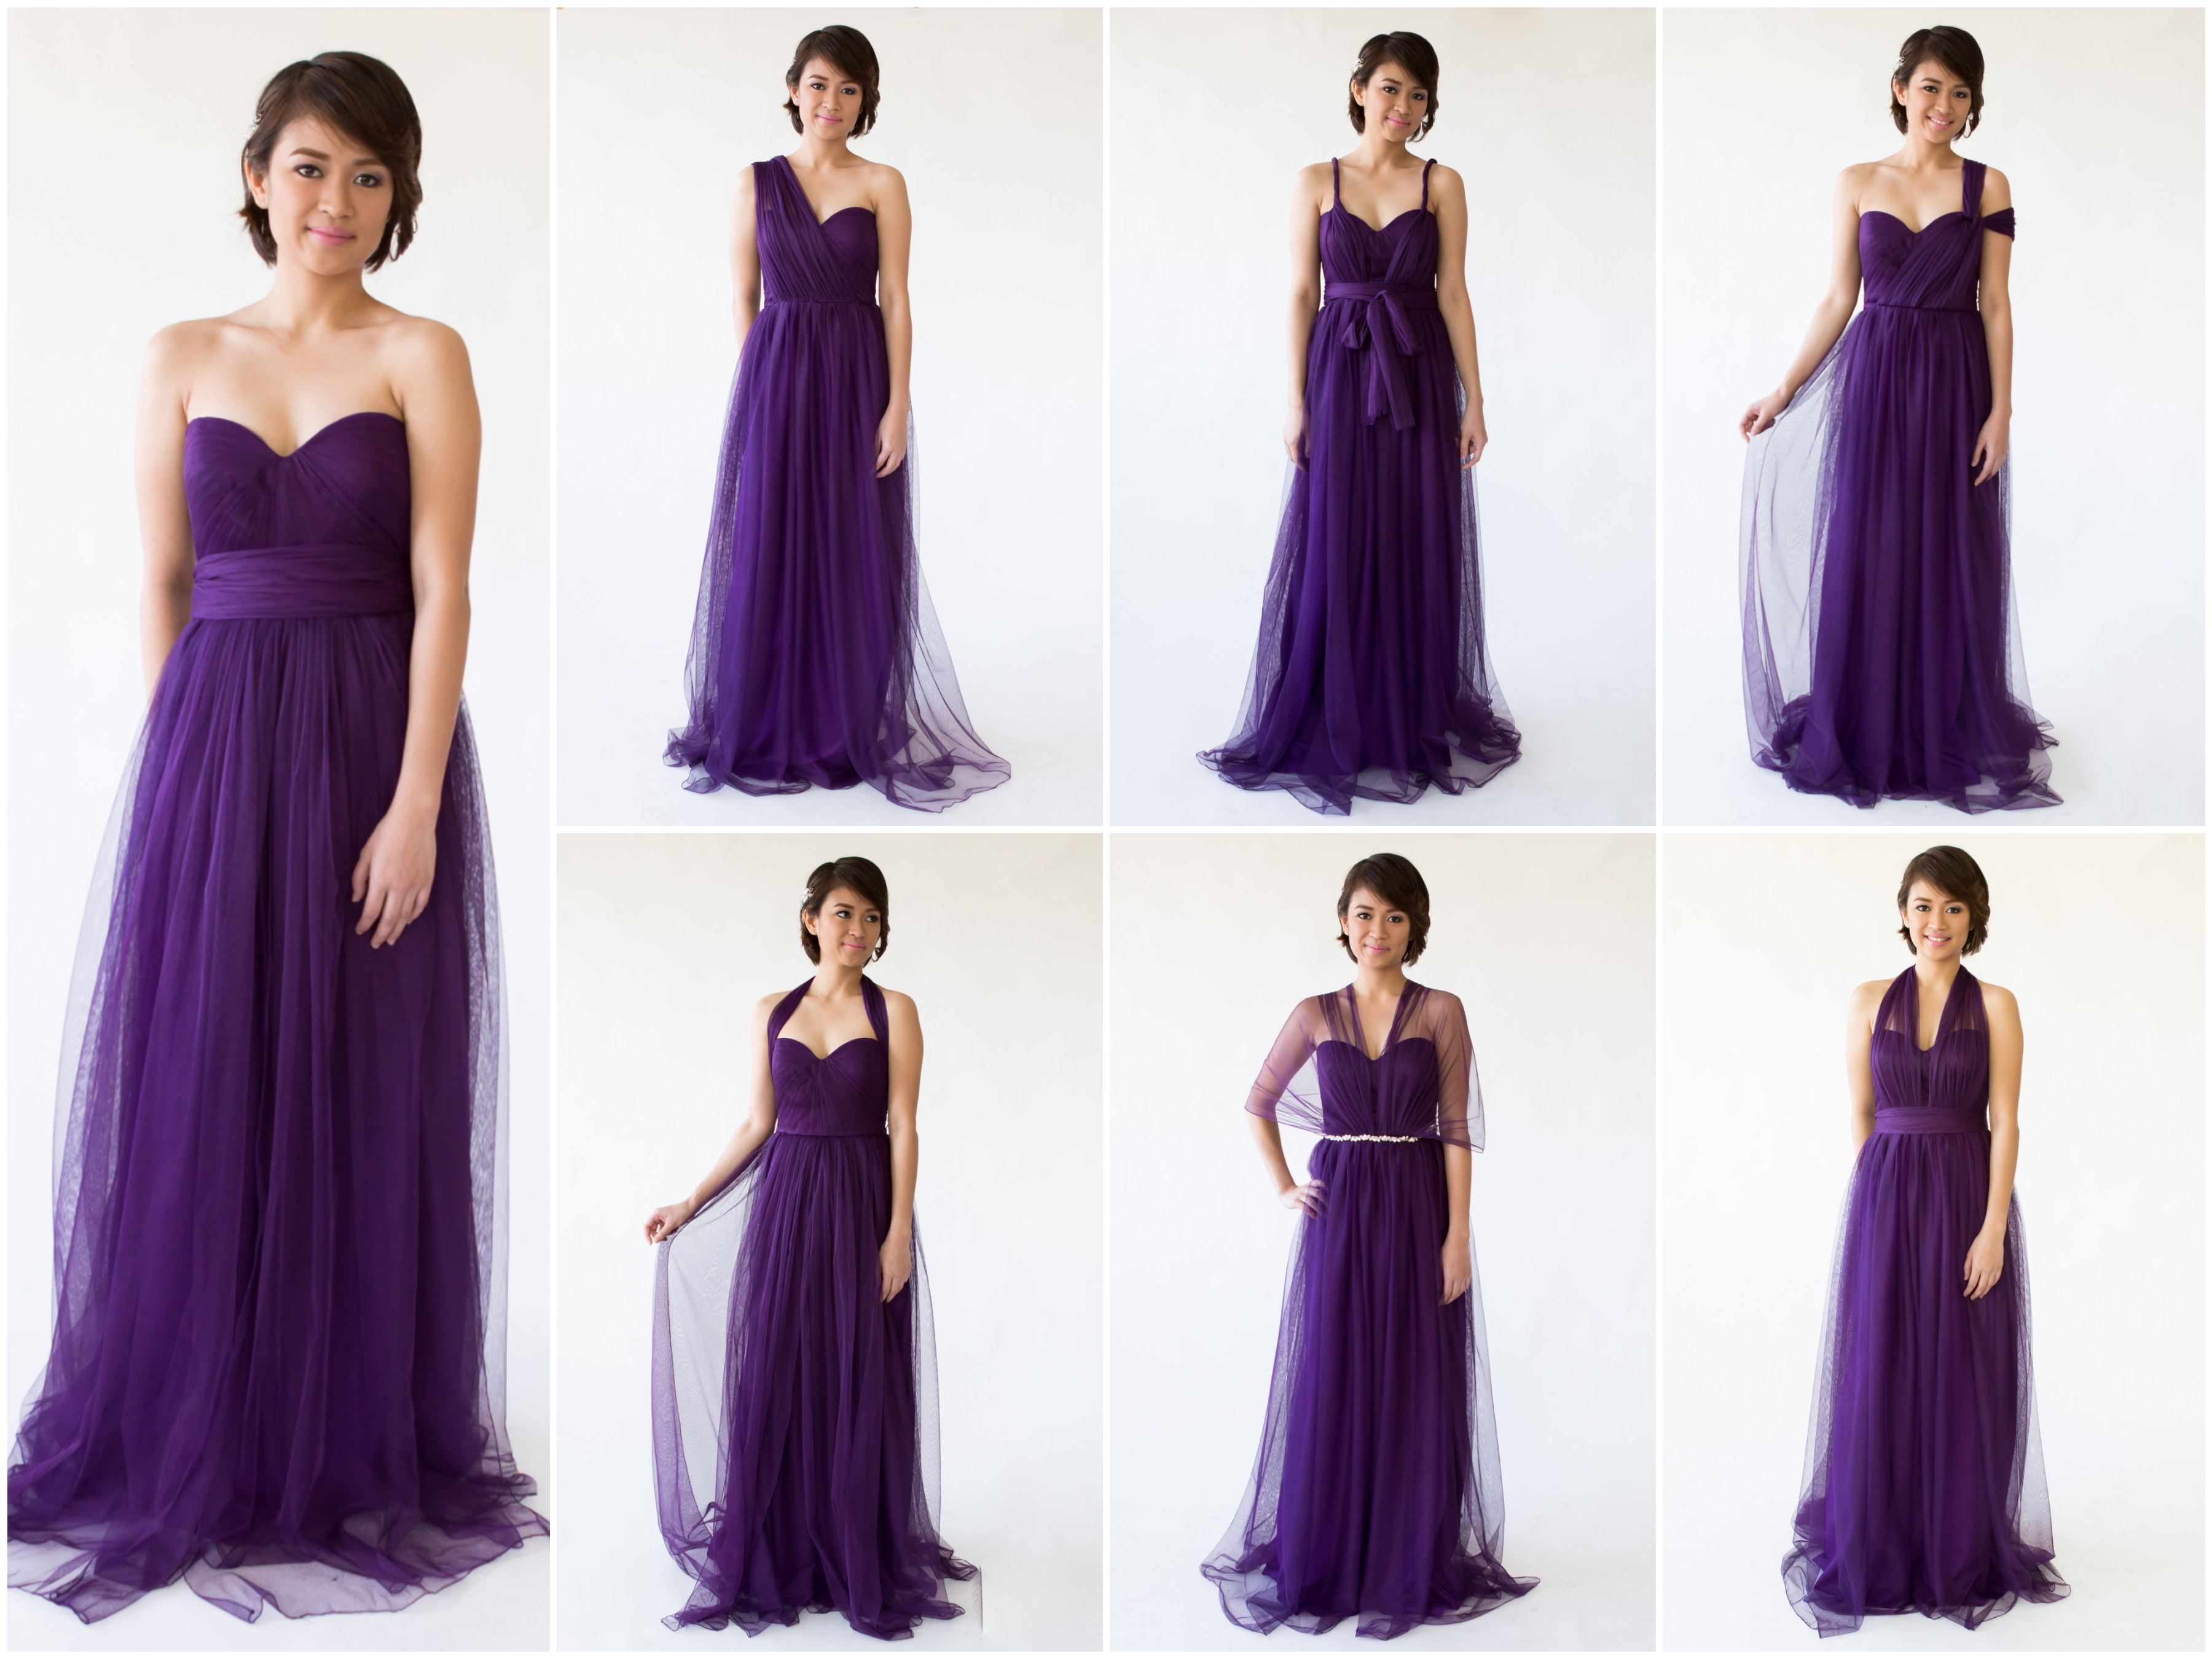 Wedding Entourage Gowns For Rent In Manila